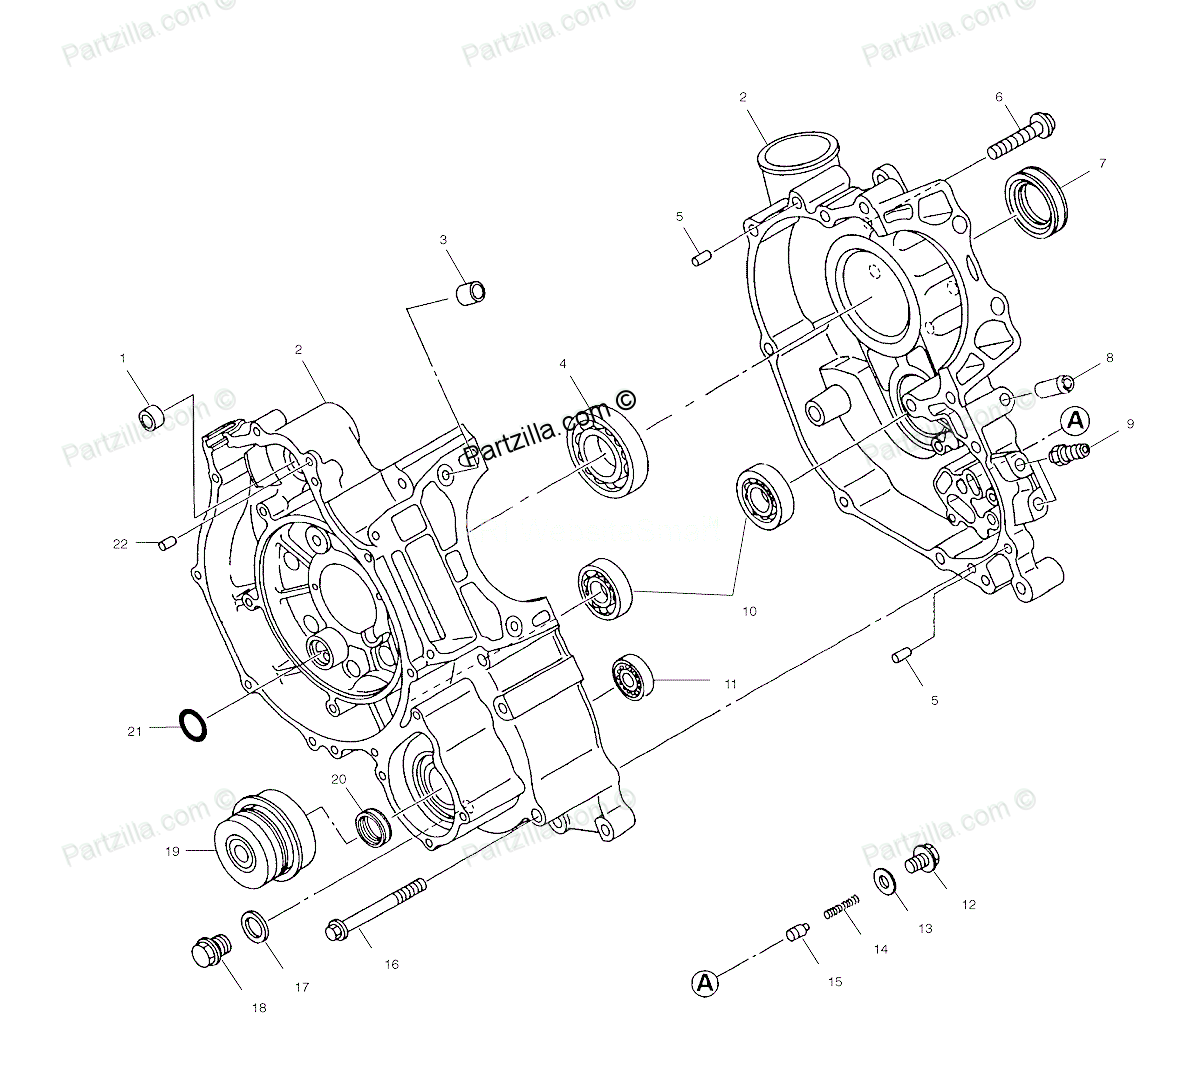 Sportsman 500 Carb Model Stator Issues